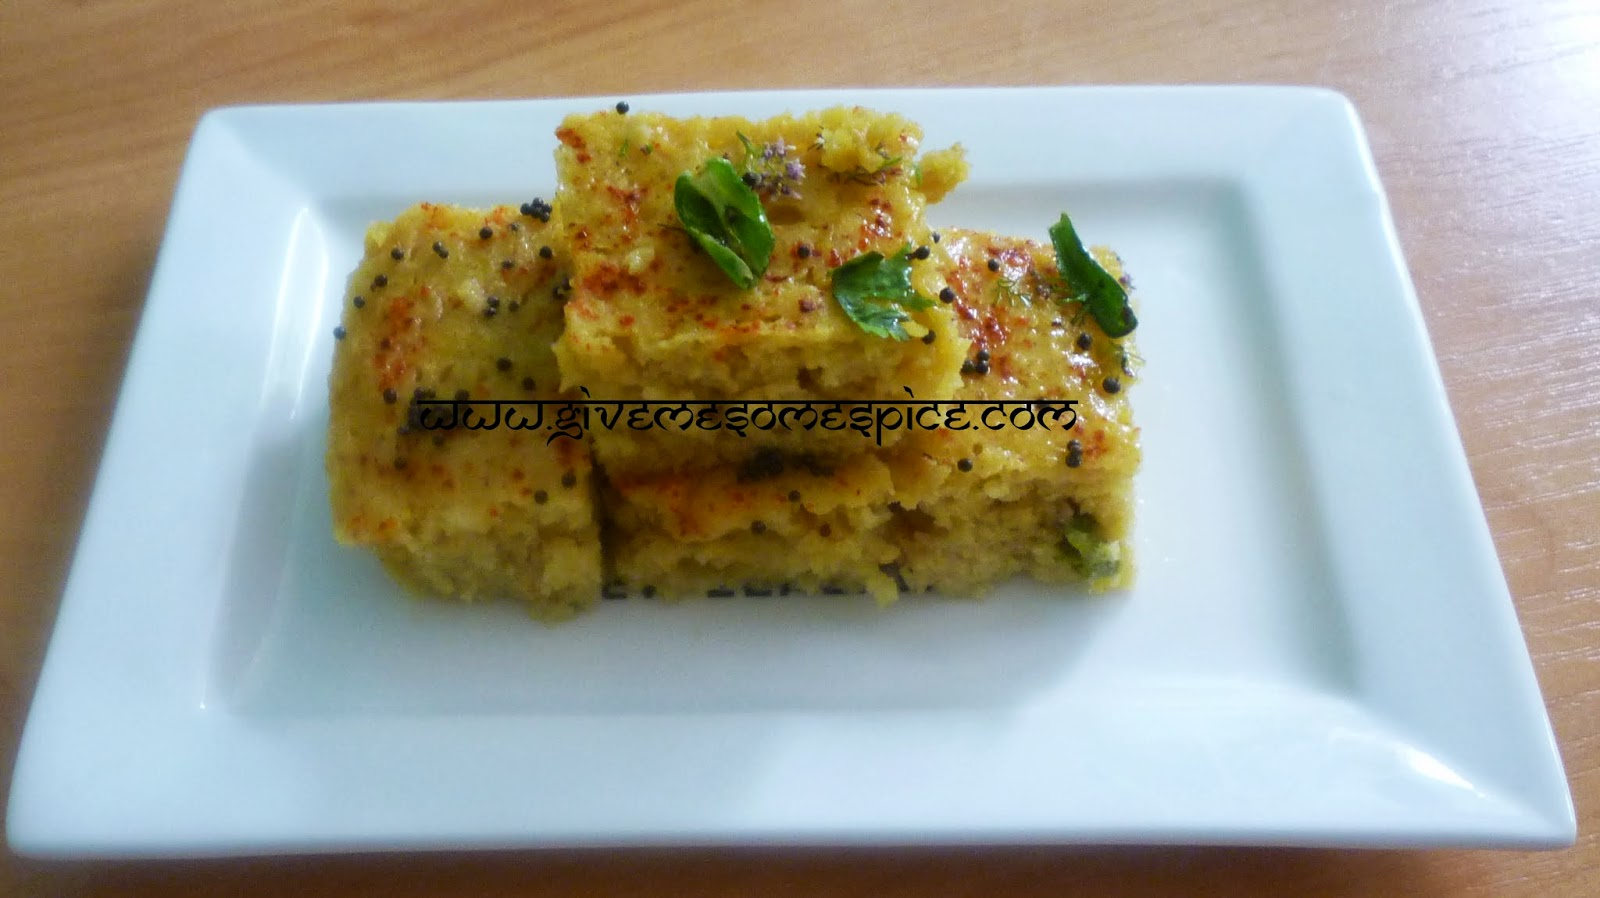 Instant microwave dhokla authentic vegetarian recipes if you fancy quick and easy dhoklas try this recipe where i made dhoklas in the microwave everyones microwaves are different so i would advice to cook the forumfinder Image collections